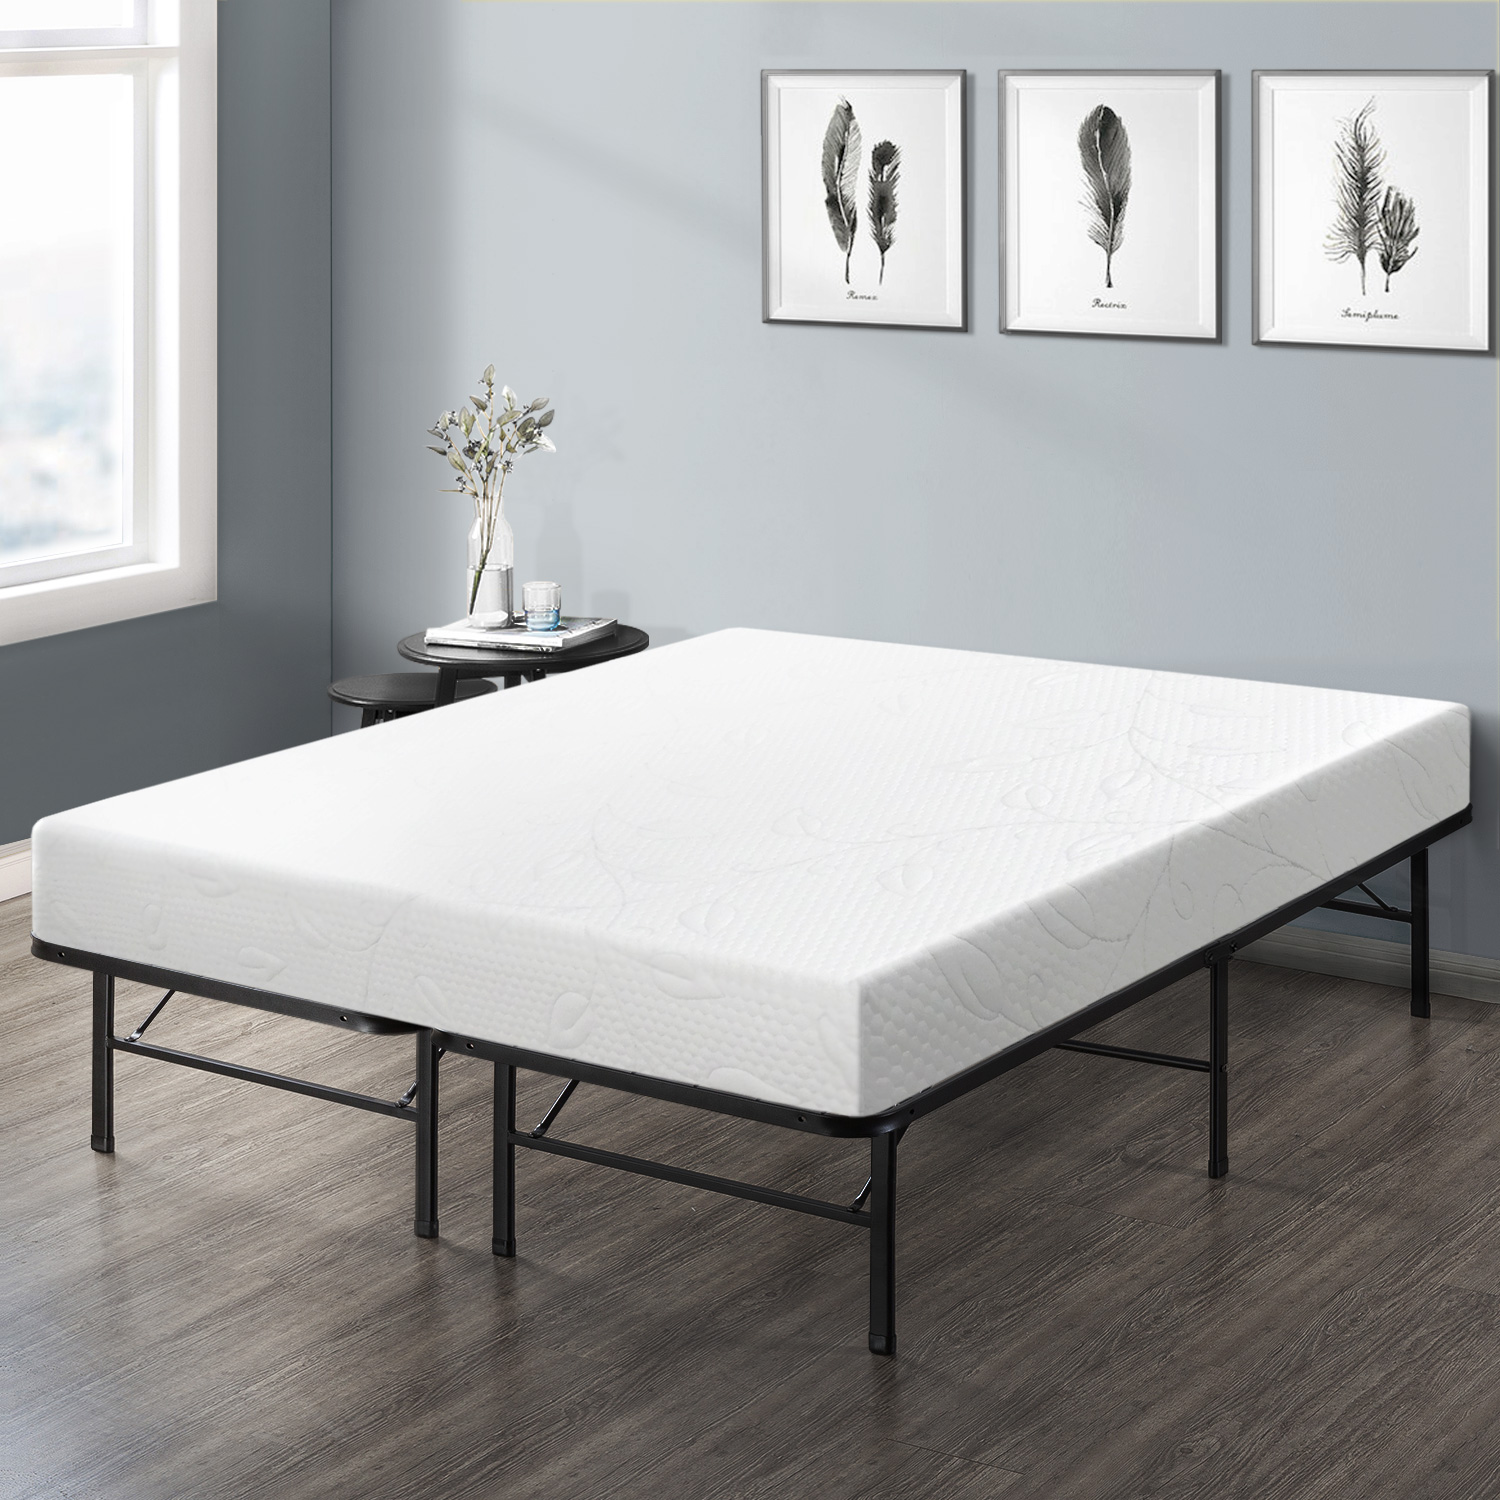 Best Price Mattress 8 Inch Air Flow Memory Foam Mattress and 14 Inch Dual-Use Bed Frame Set